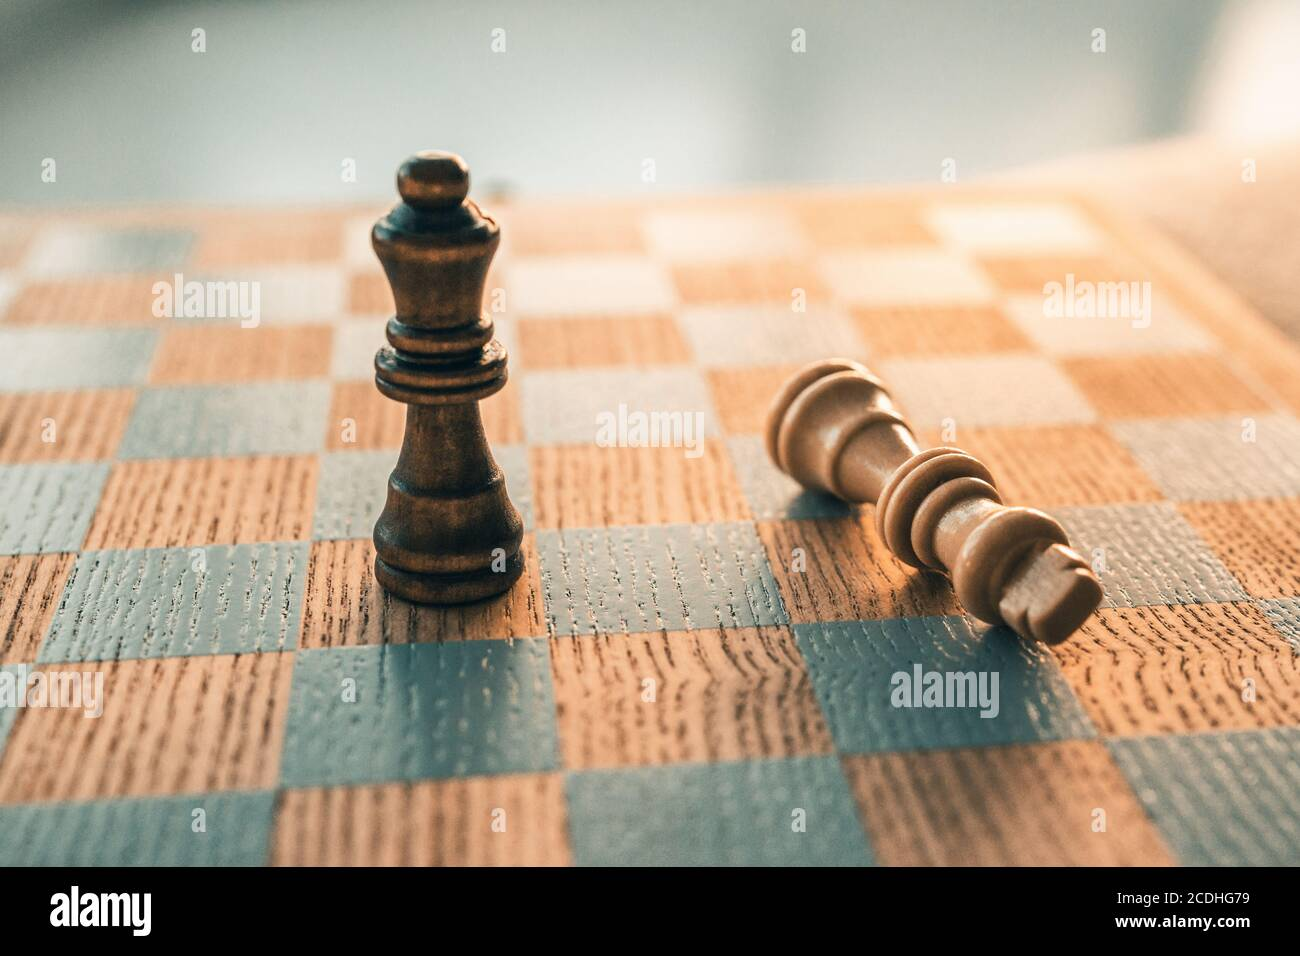 Chess game winning concept. Victory move with last piece standing on chessboard wooden board Stock Photo